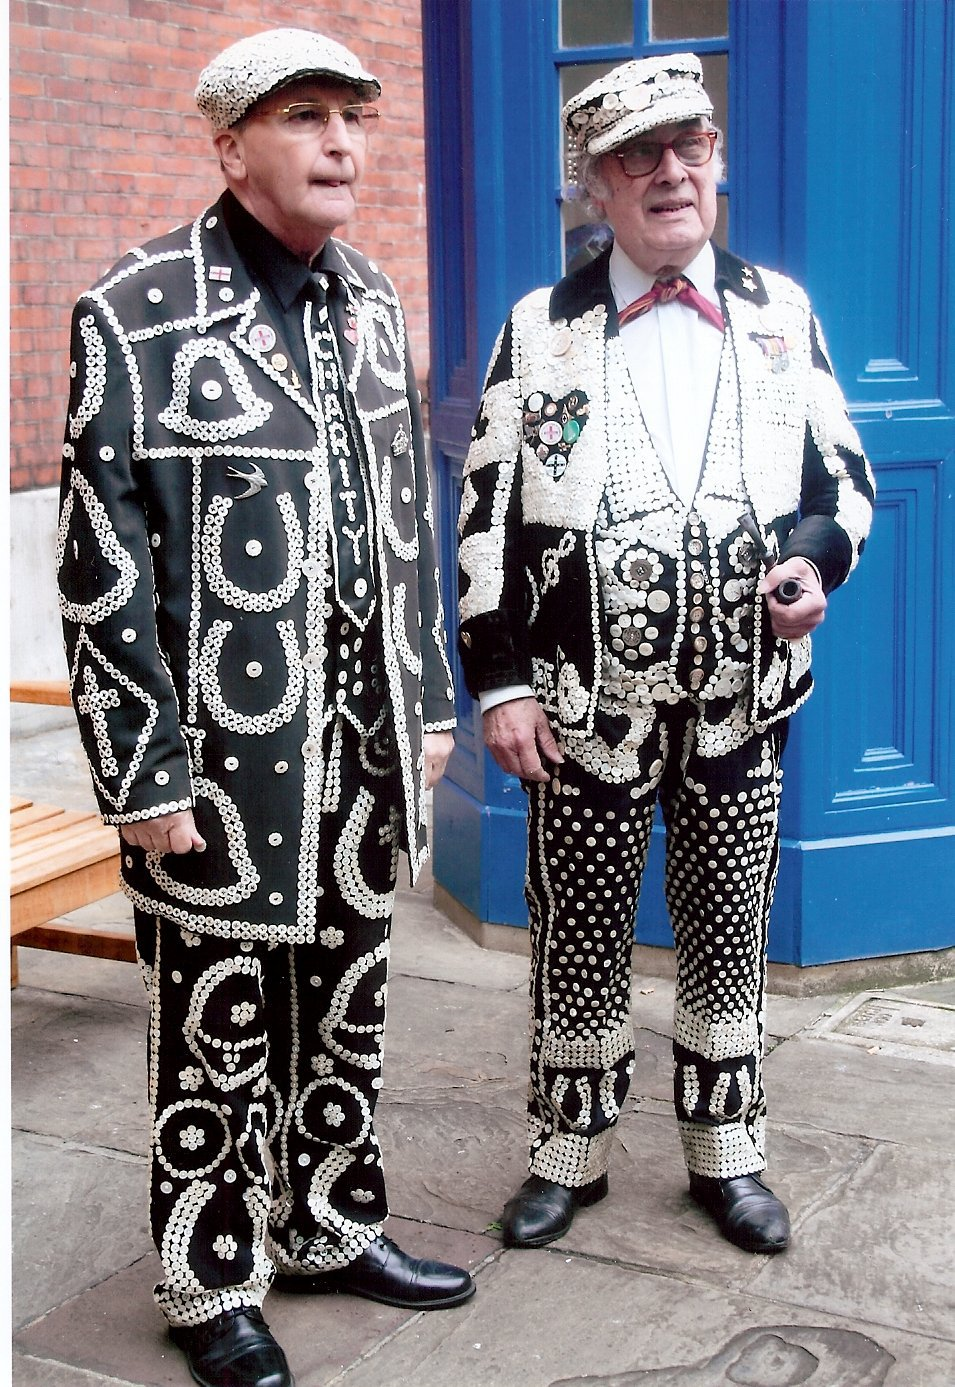 Pearly Kings And Queens Harvest Festival 2012 London